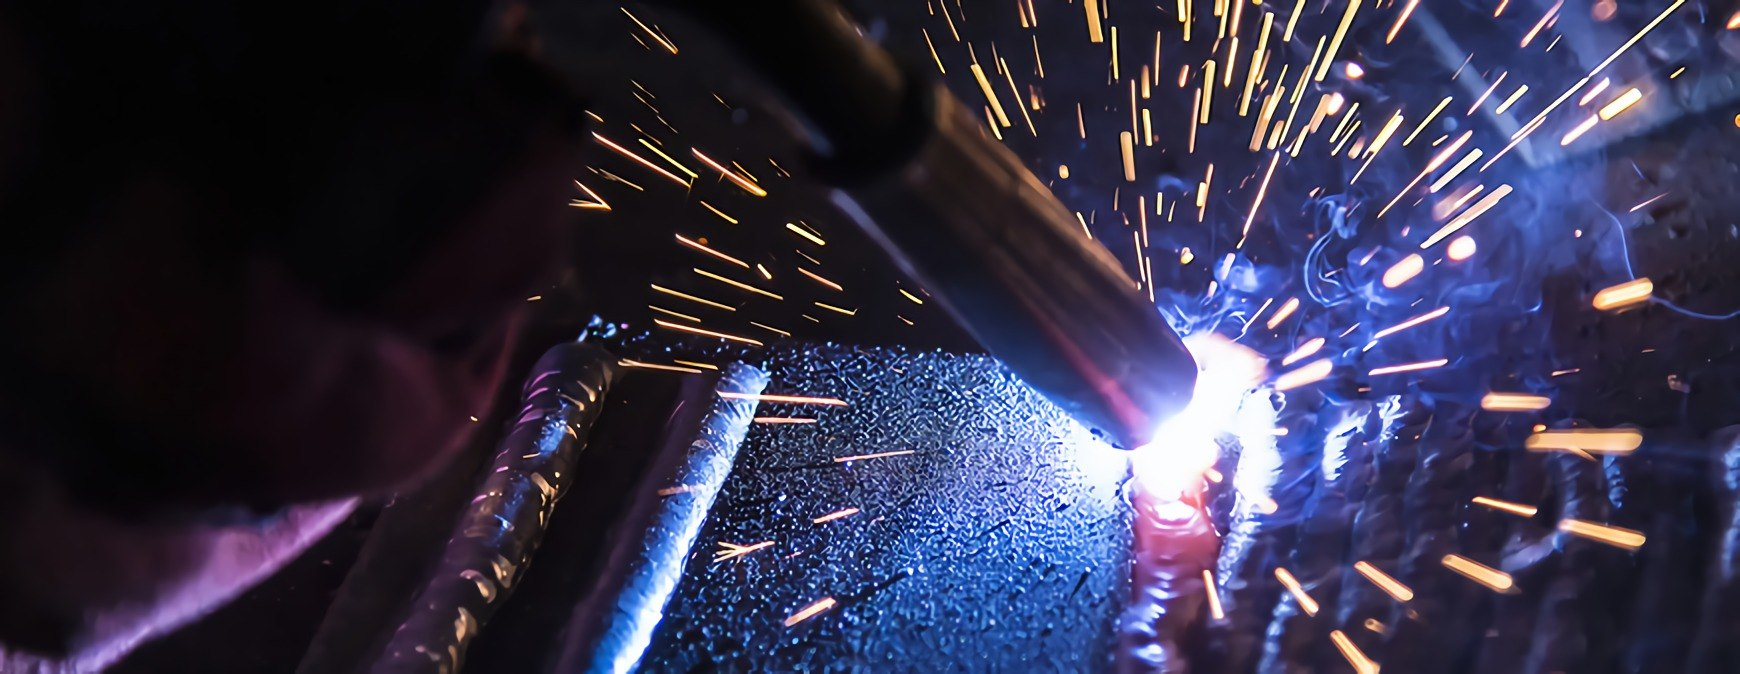 welding closeup